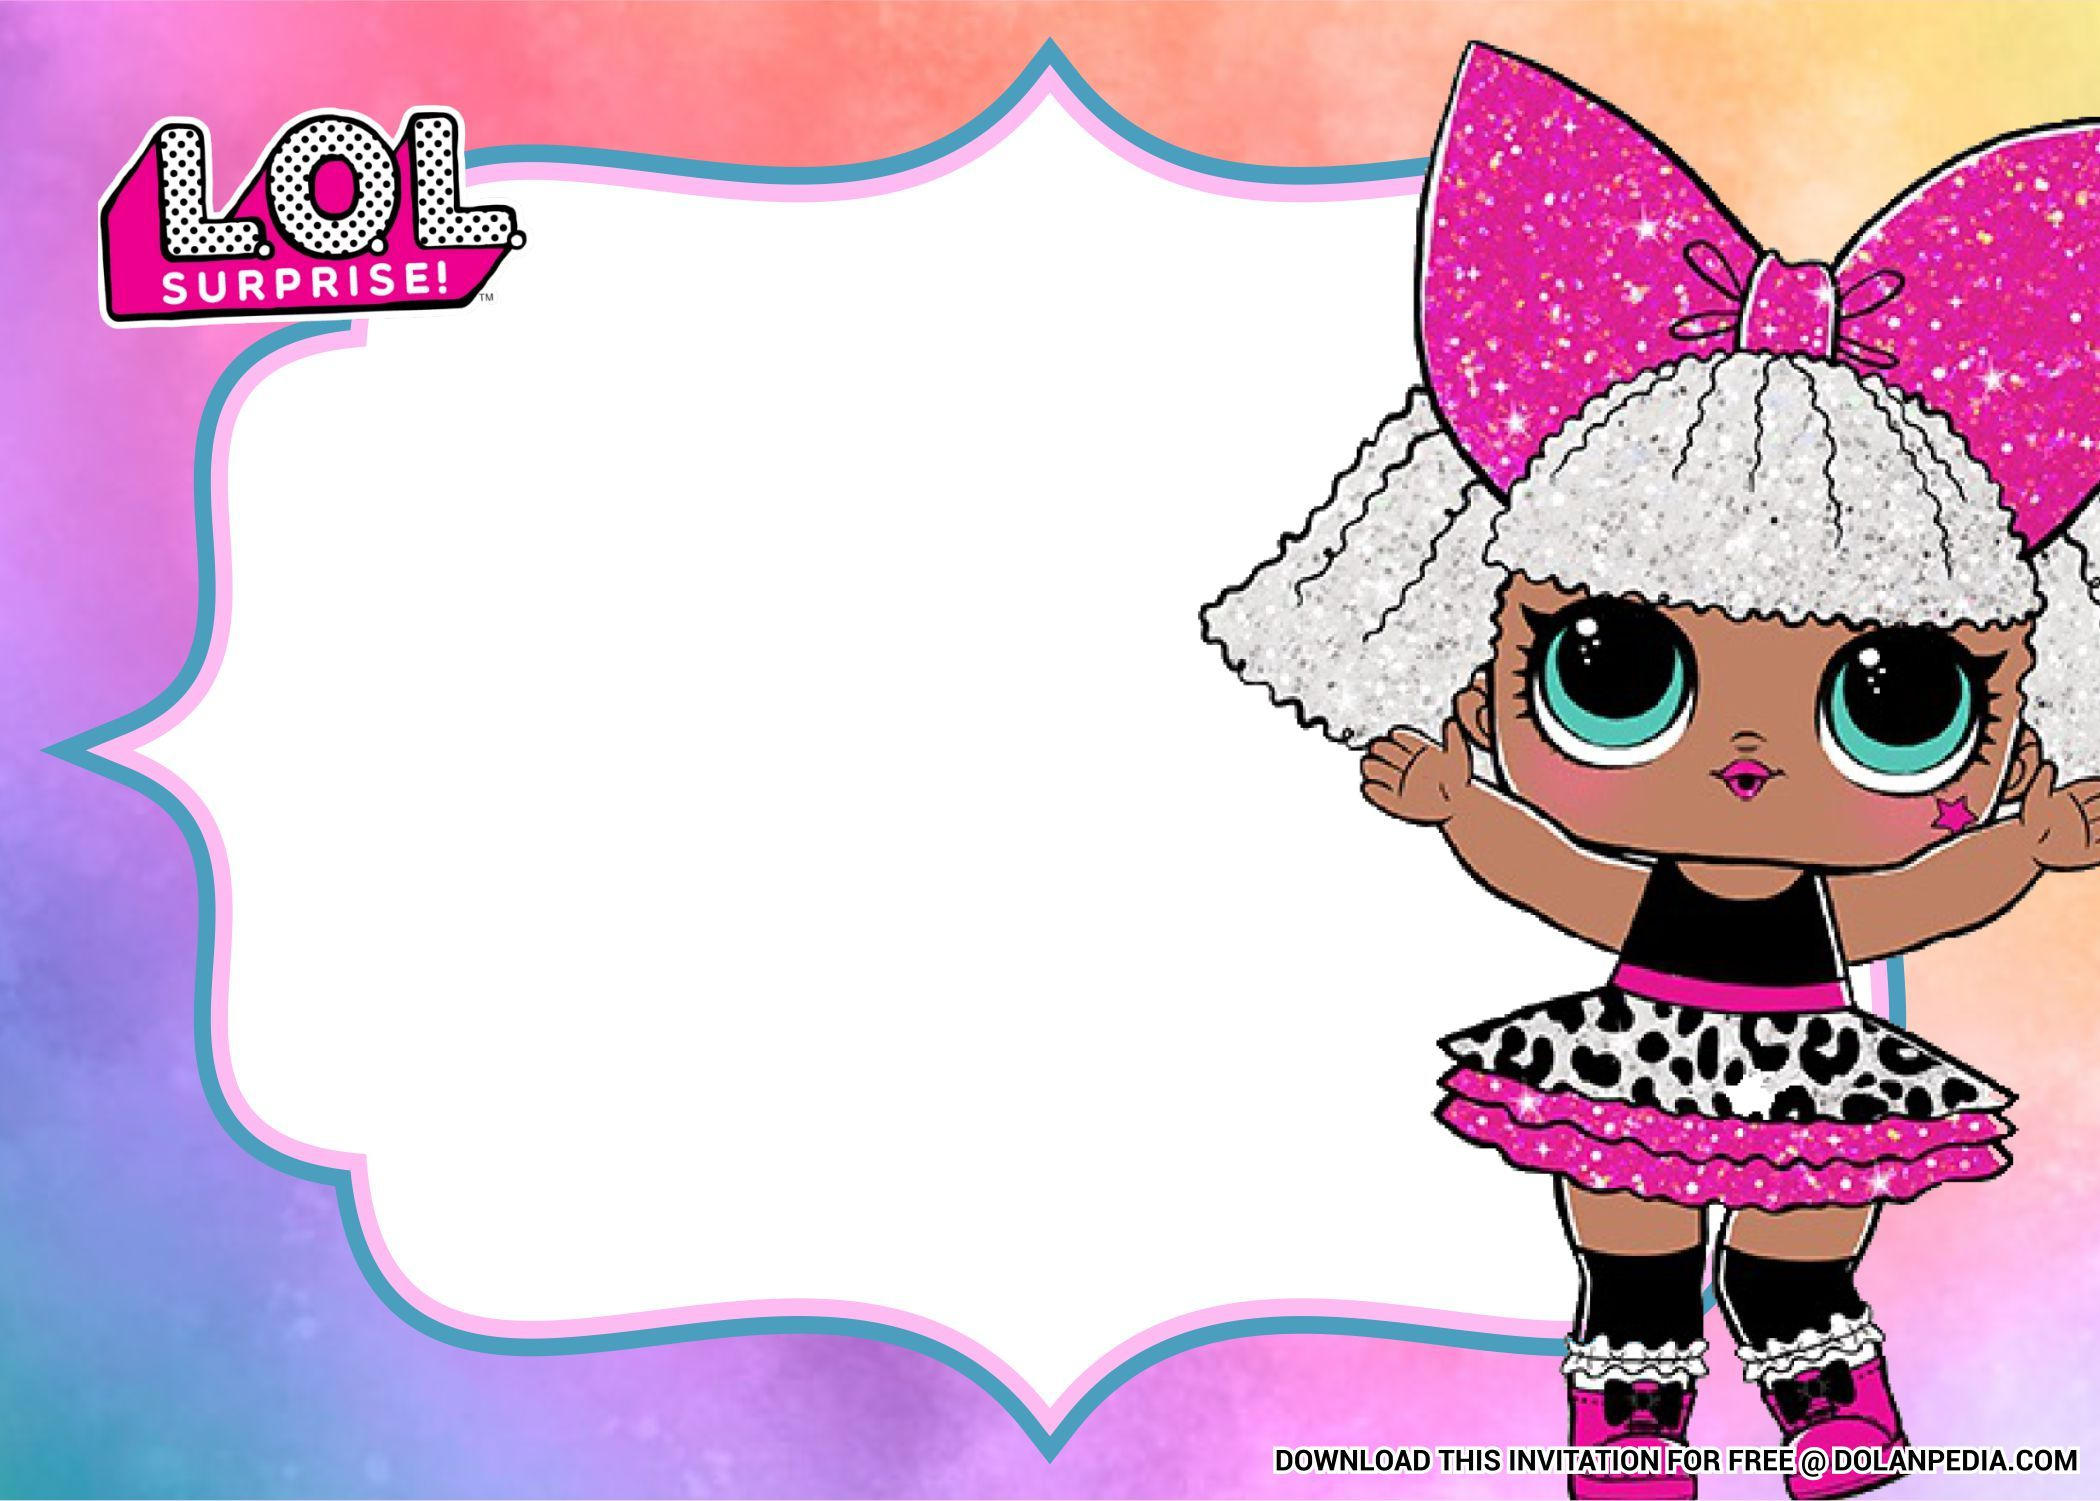 Free Printable Lol Surprise Dolls Birthday Party Invitation Templates In 2020 Party Invite Template Birthday Party Invitation Templates Birthday Party Invitations